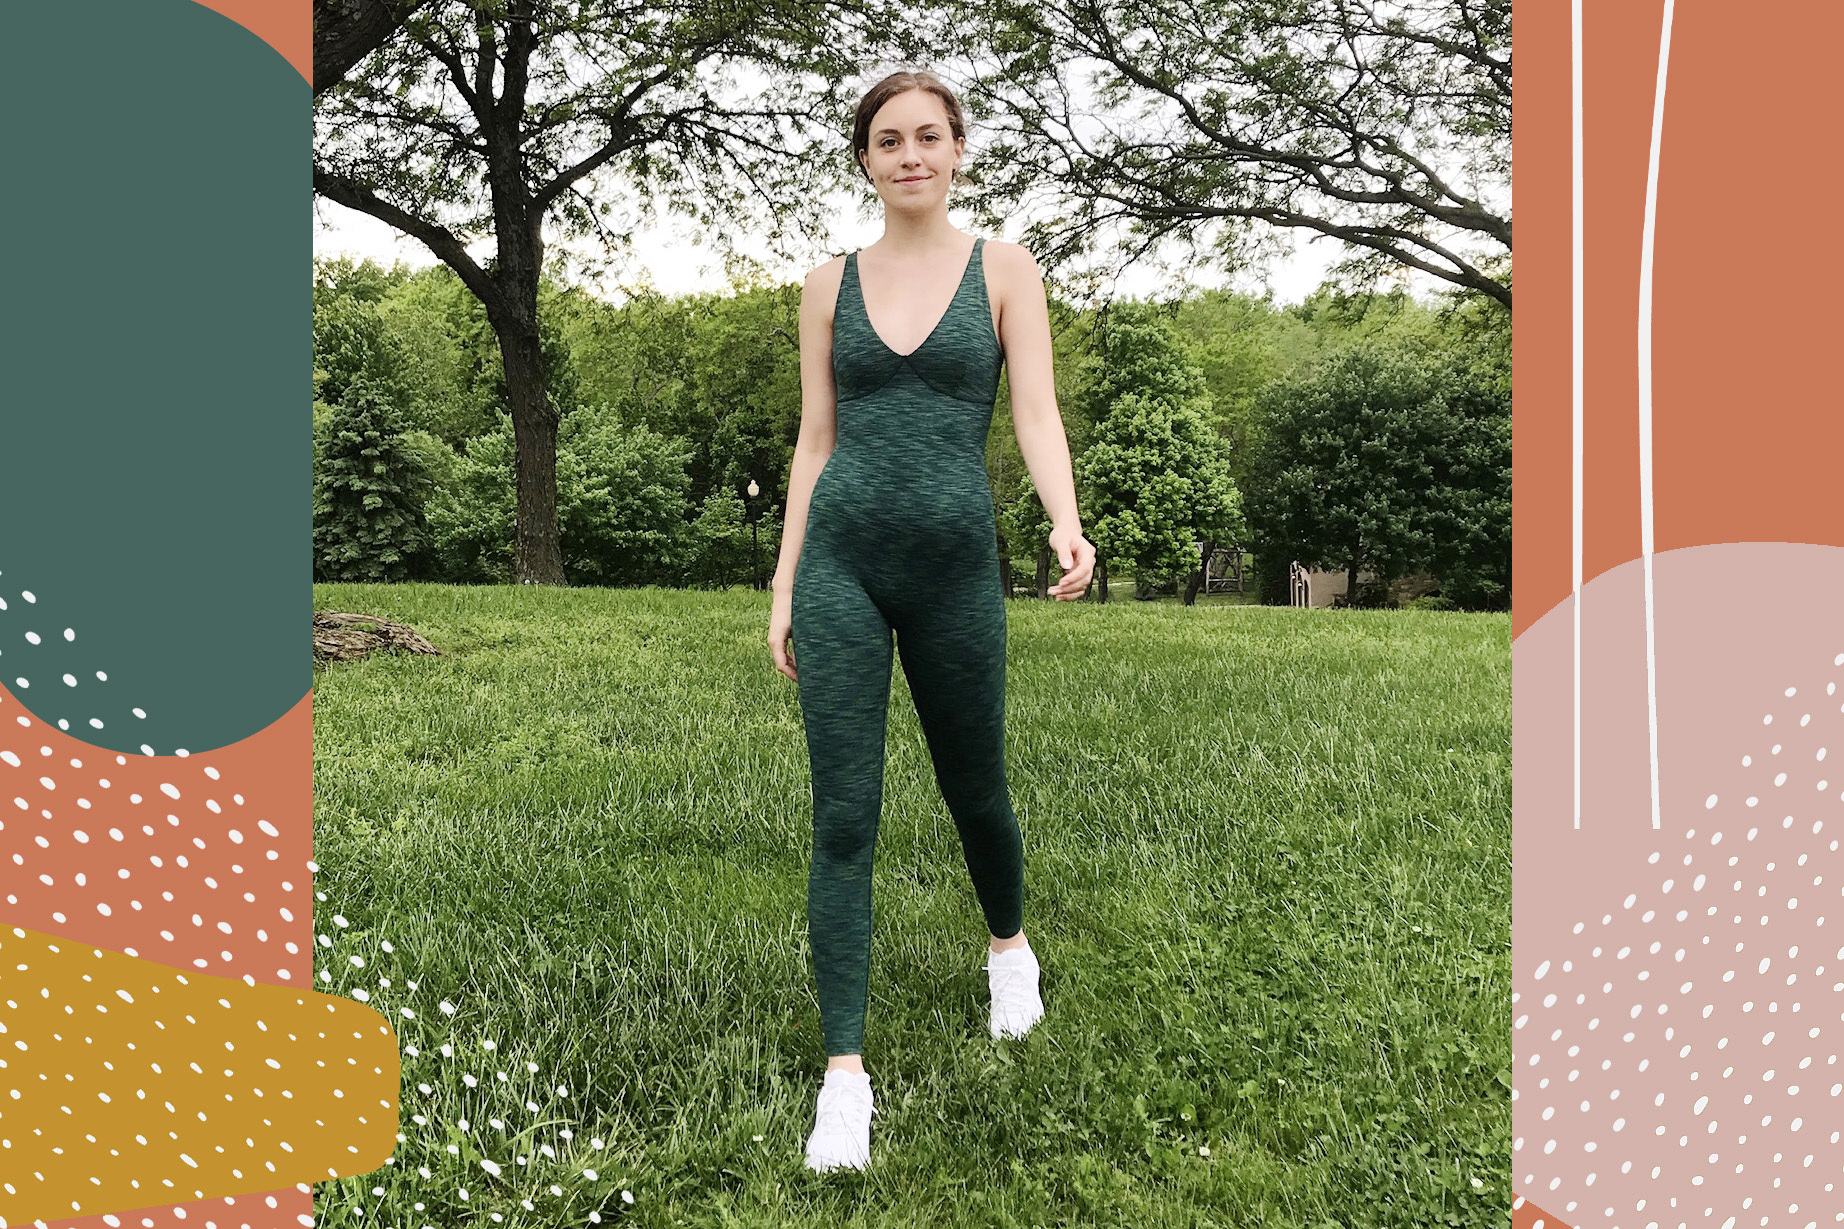 Unitards are the new bike shorts—here are 3 ways to style this unexpected trend